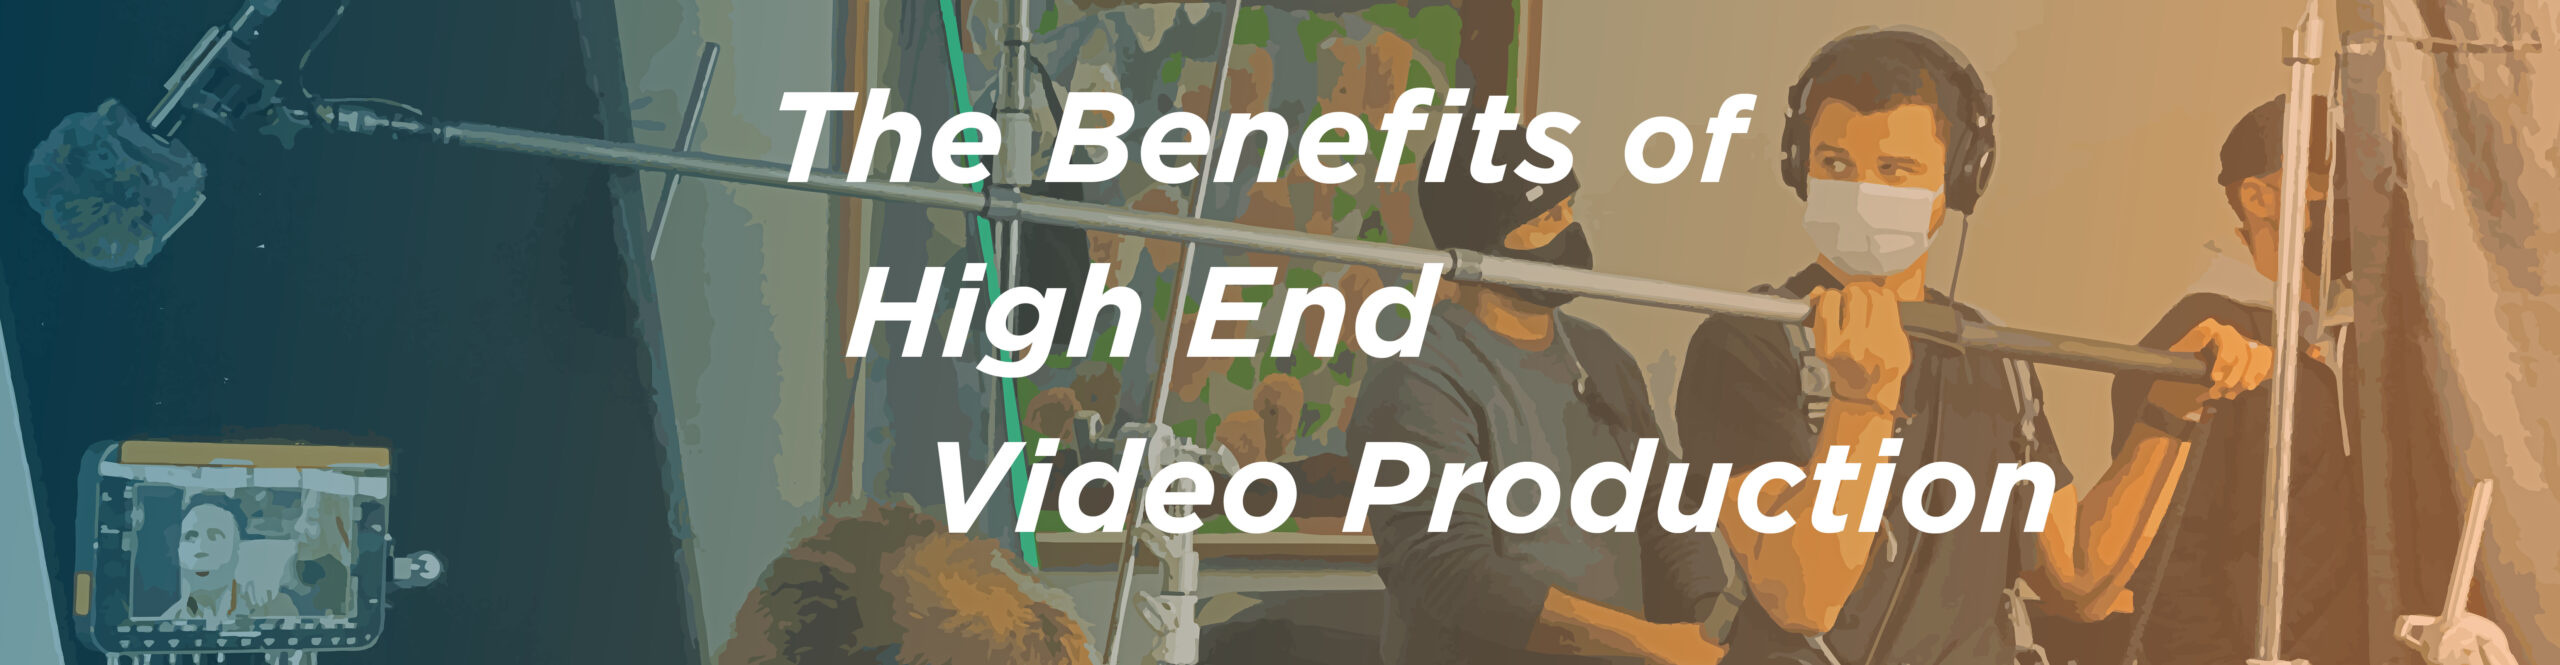 The Benefits of High-End Video Production